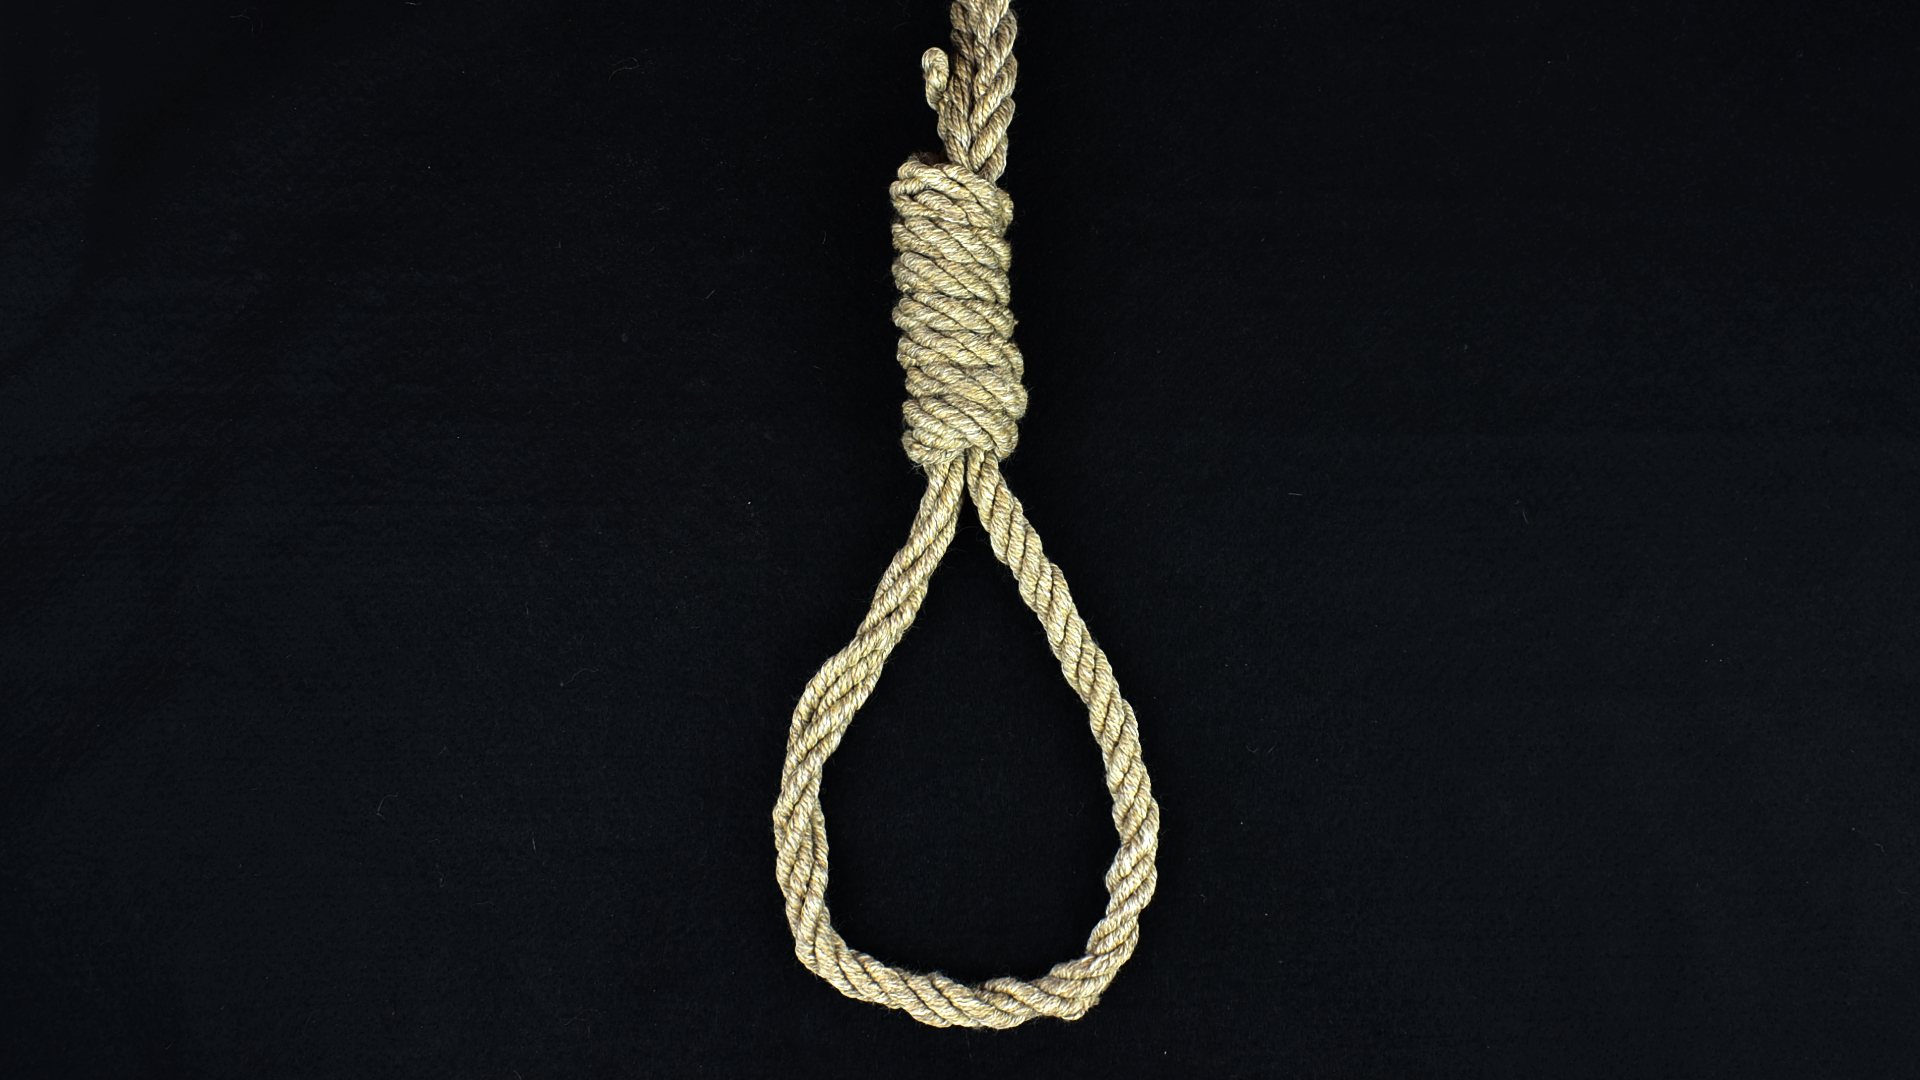 Tie-a-Noose-Step-10-Version-4